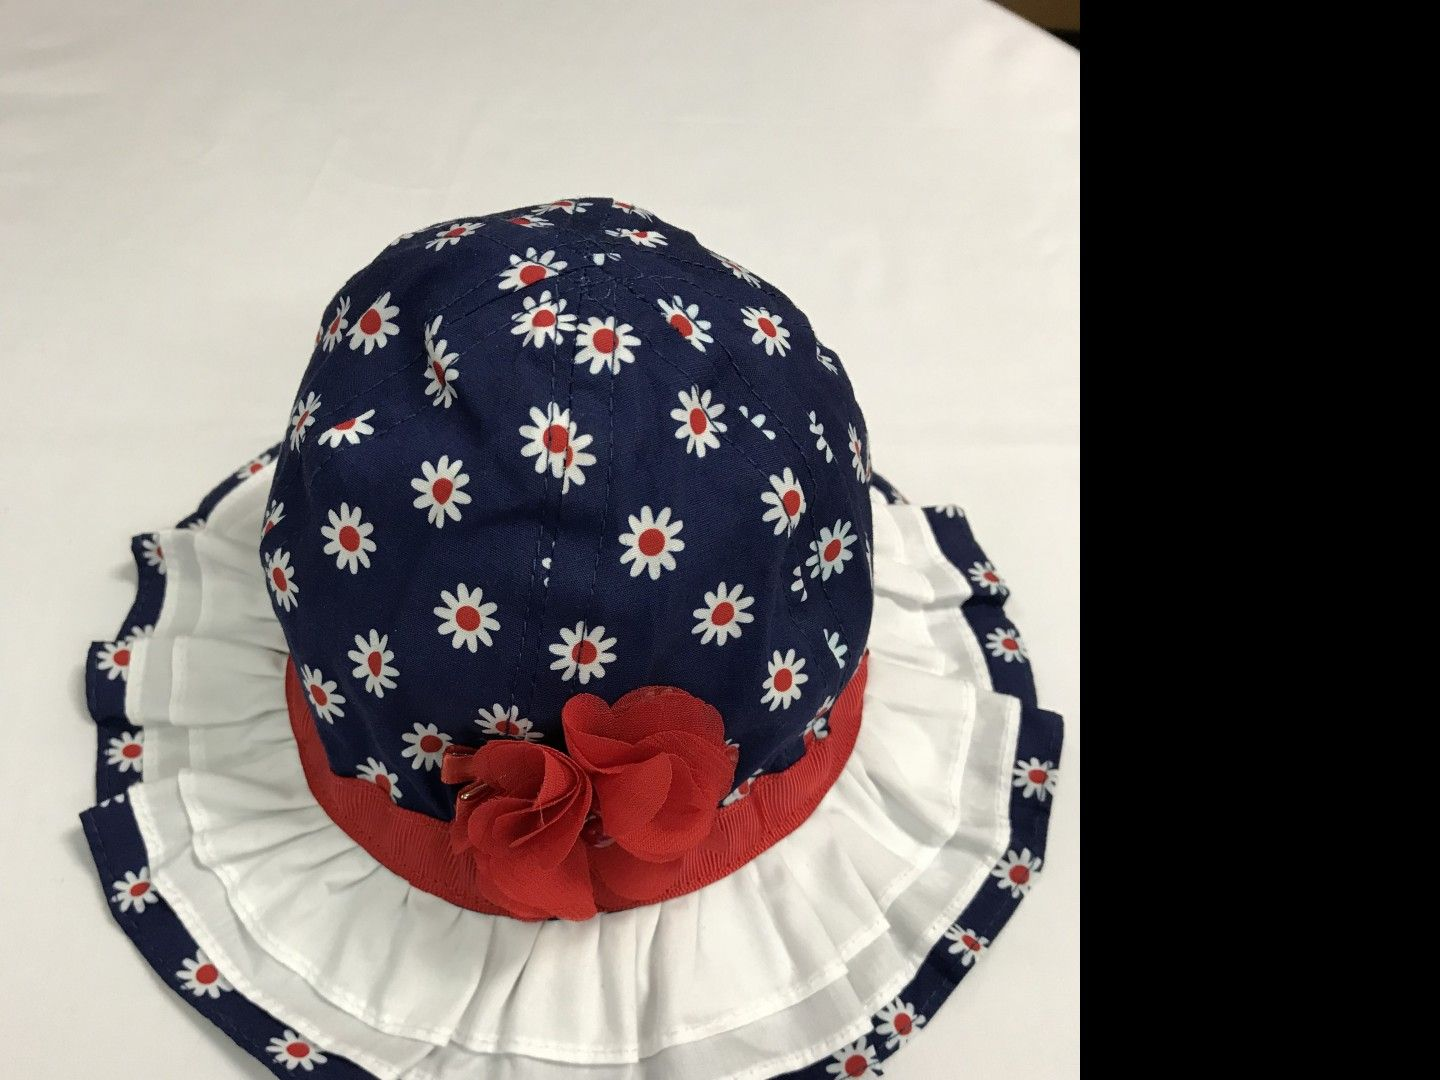 WEE ONES RED-WHITE-BLUE SUN HAT SIZE 6-12 MONTHS